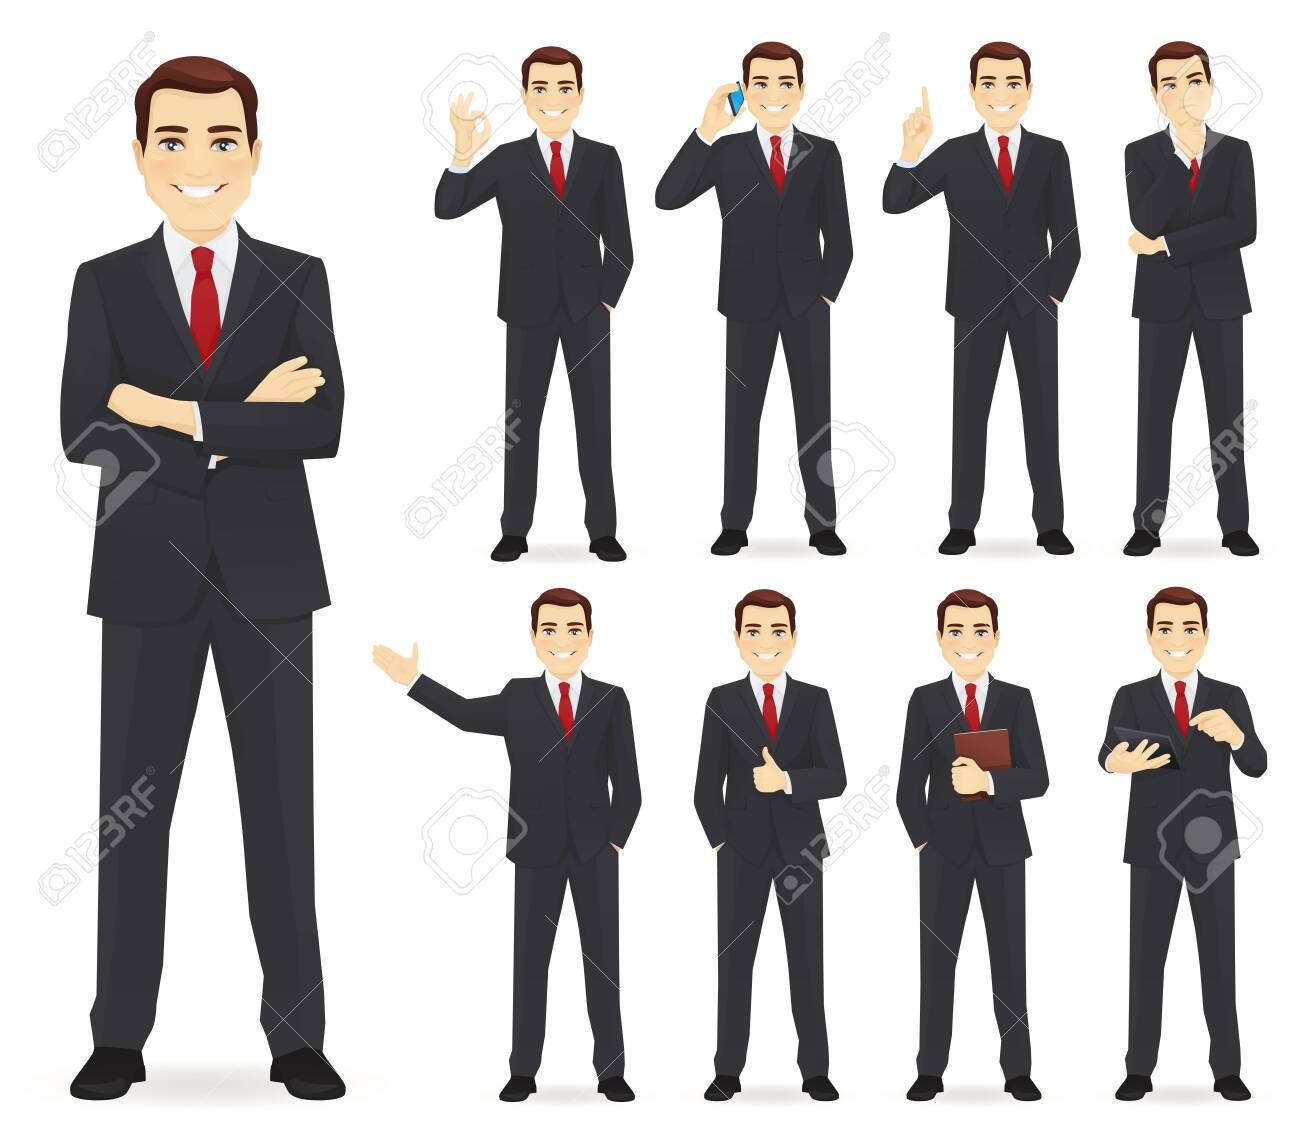 Business man set different gestures isolated vector illustration - 123541269